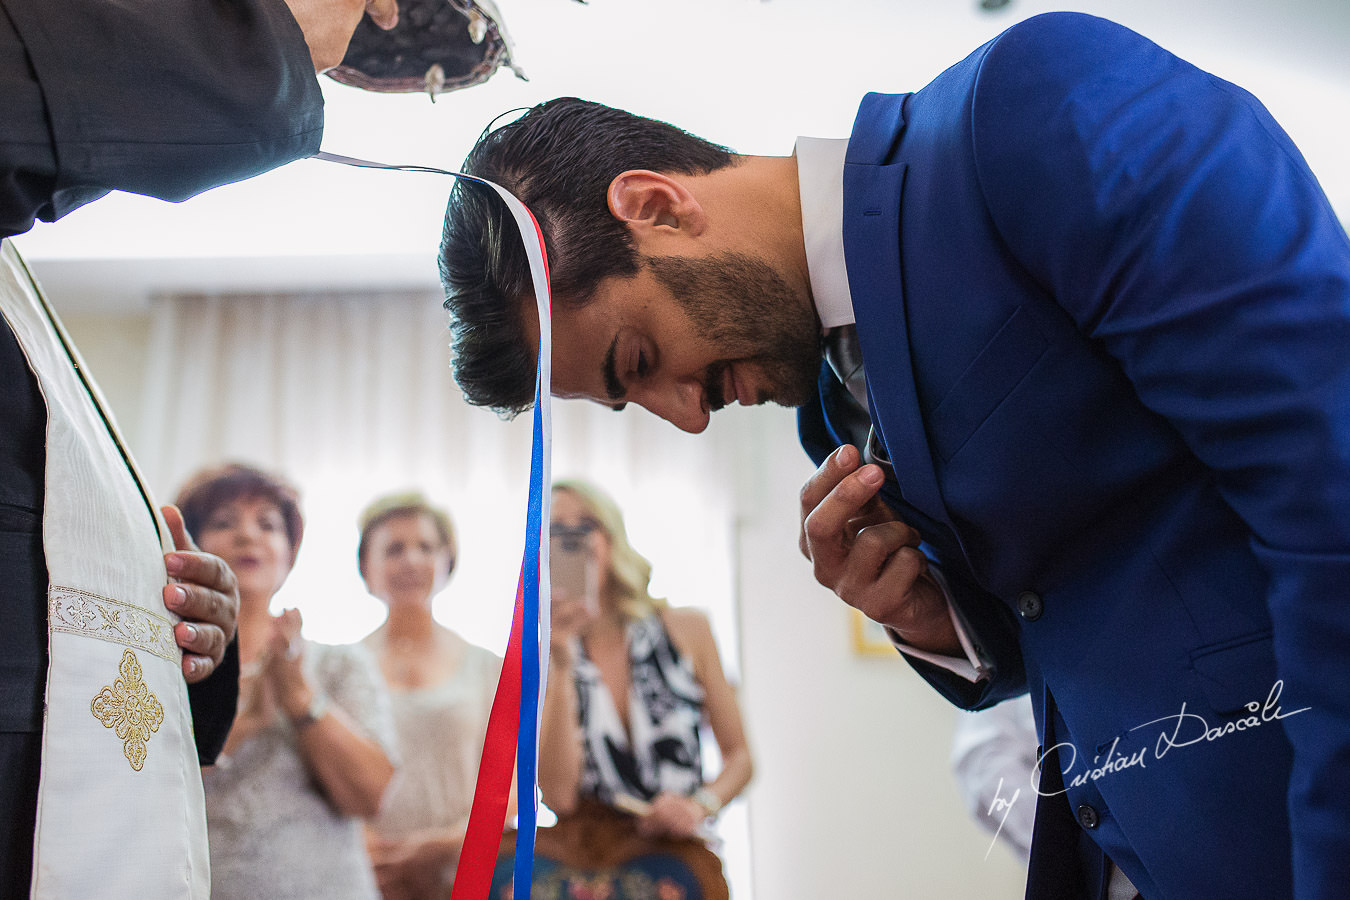 The groom making the sign of the Holy Cross during a traditional ceremony, captured at a wedding in Cyprus by Photographer Cristian Dascalu.